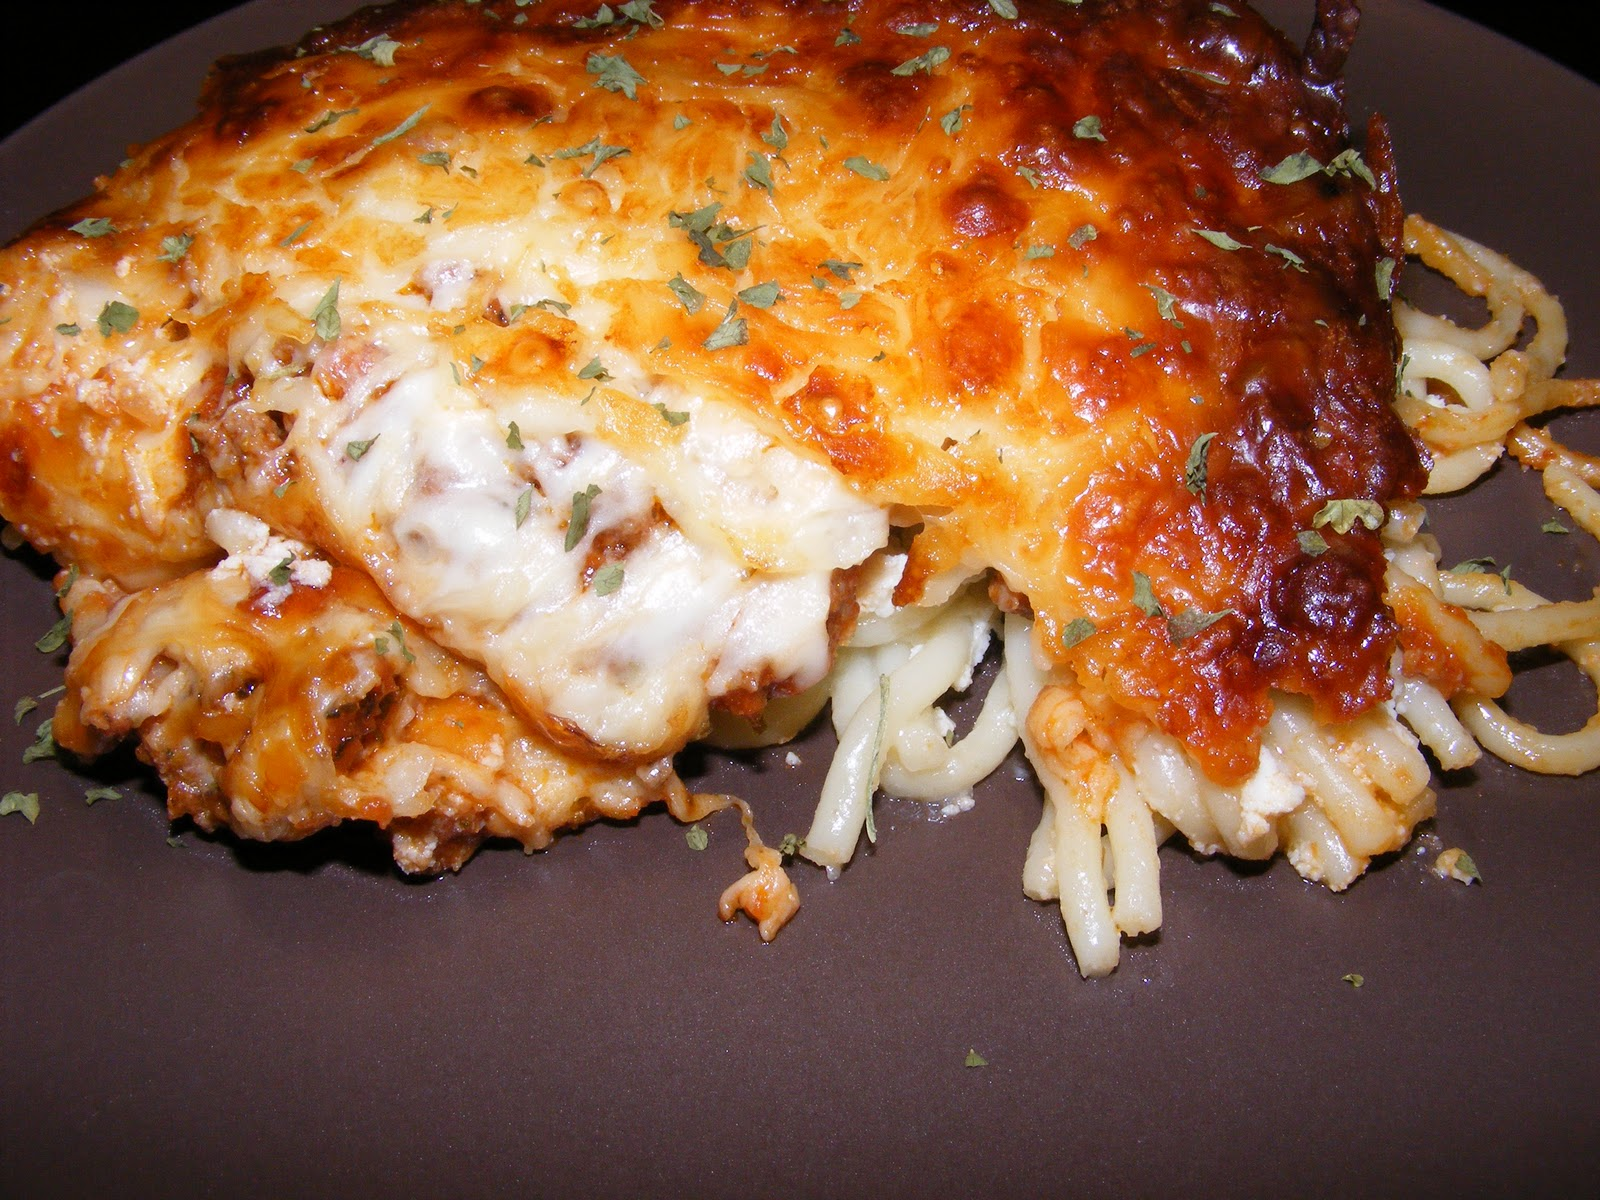 The Recipe Review: Baked Spaghetti